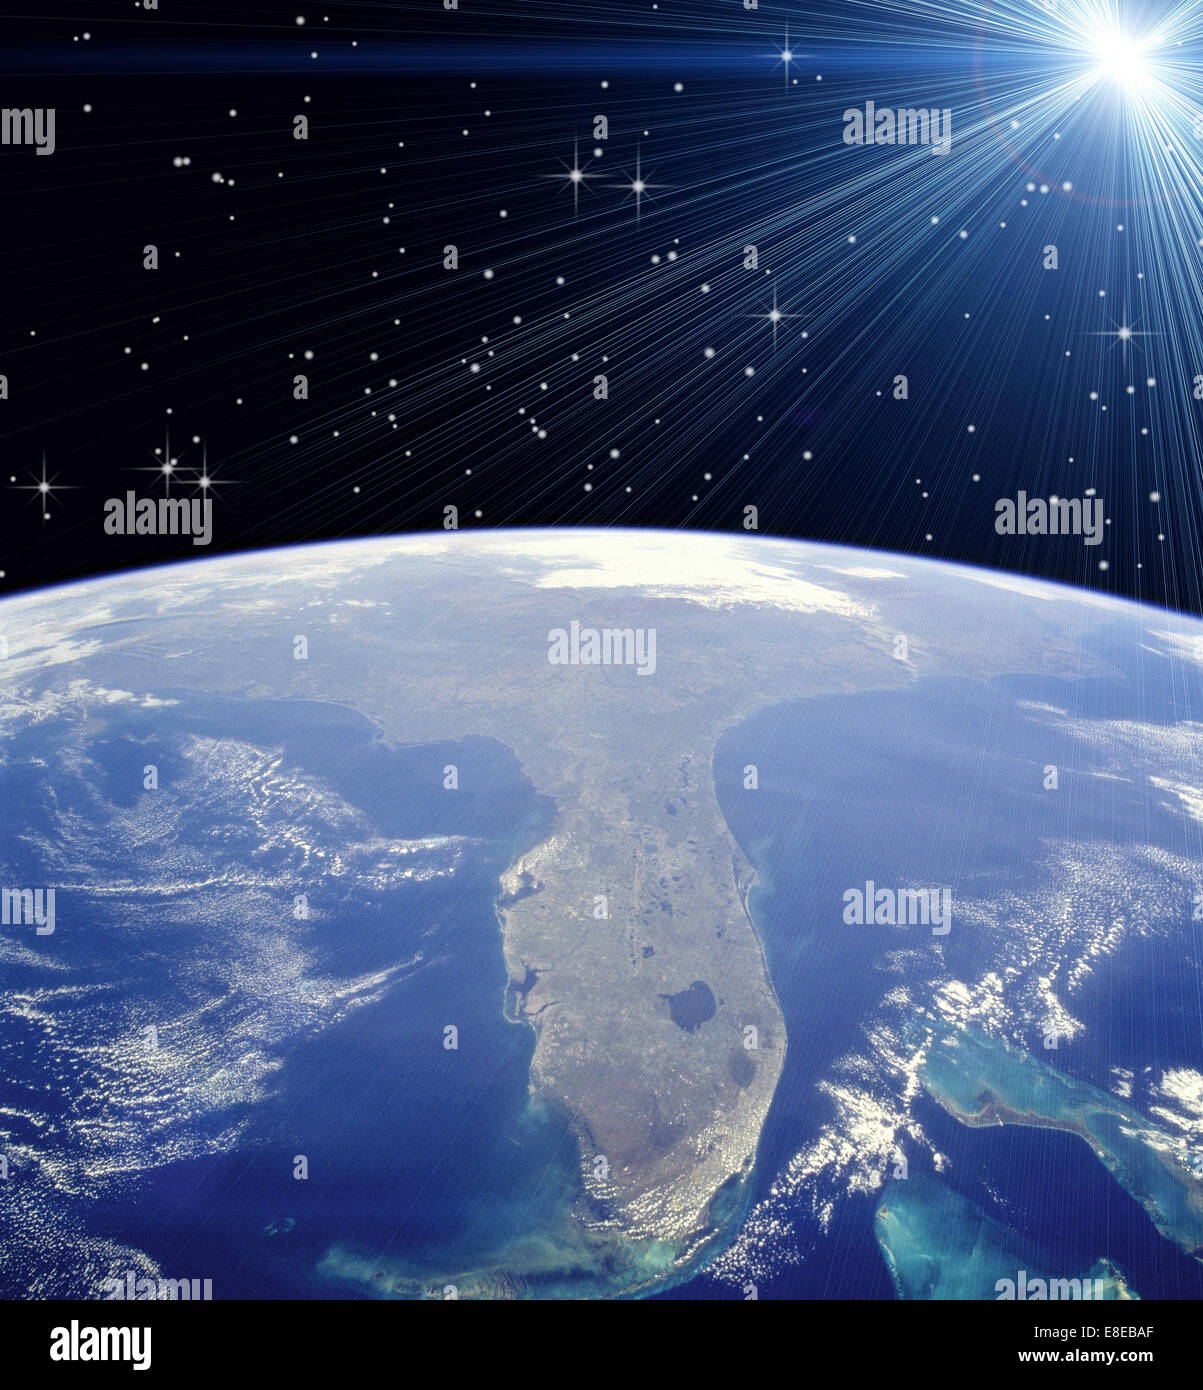 NASA photo from space showing Florida and bright star - Stock Image